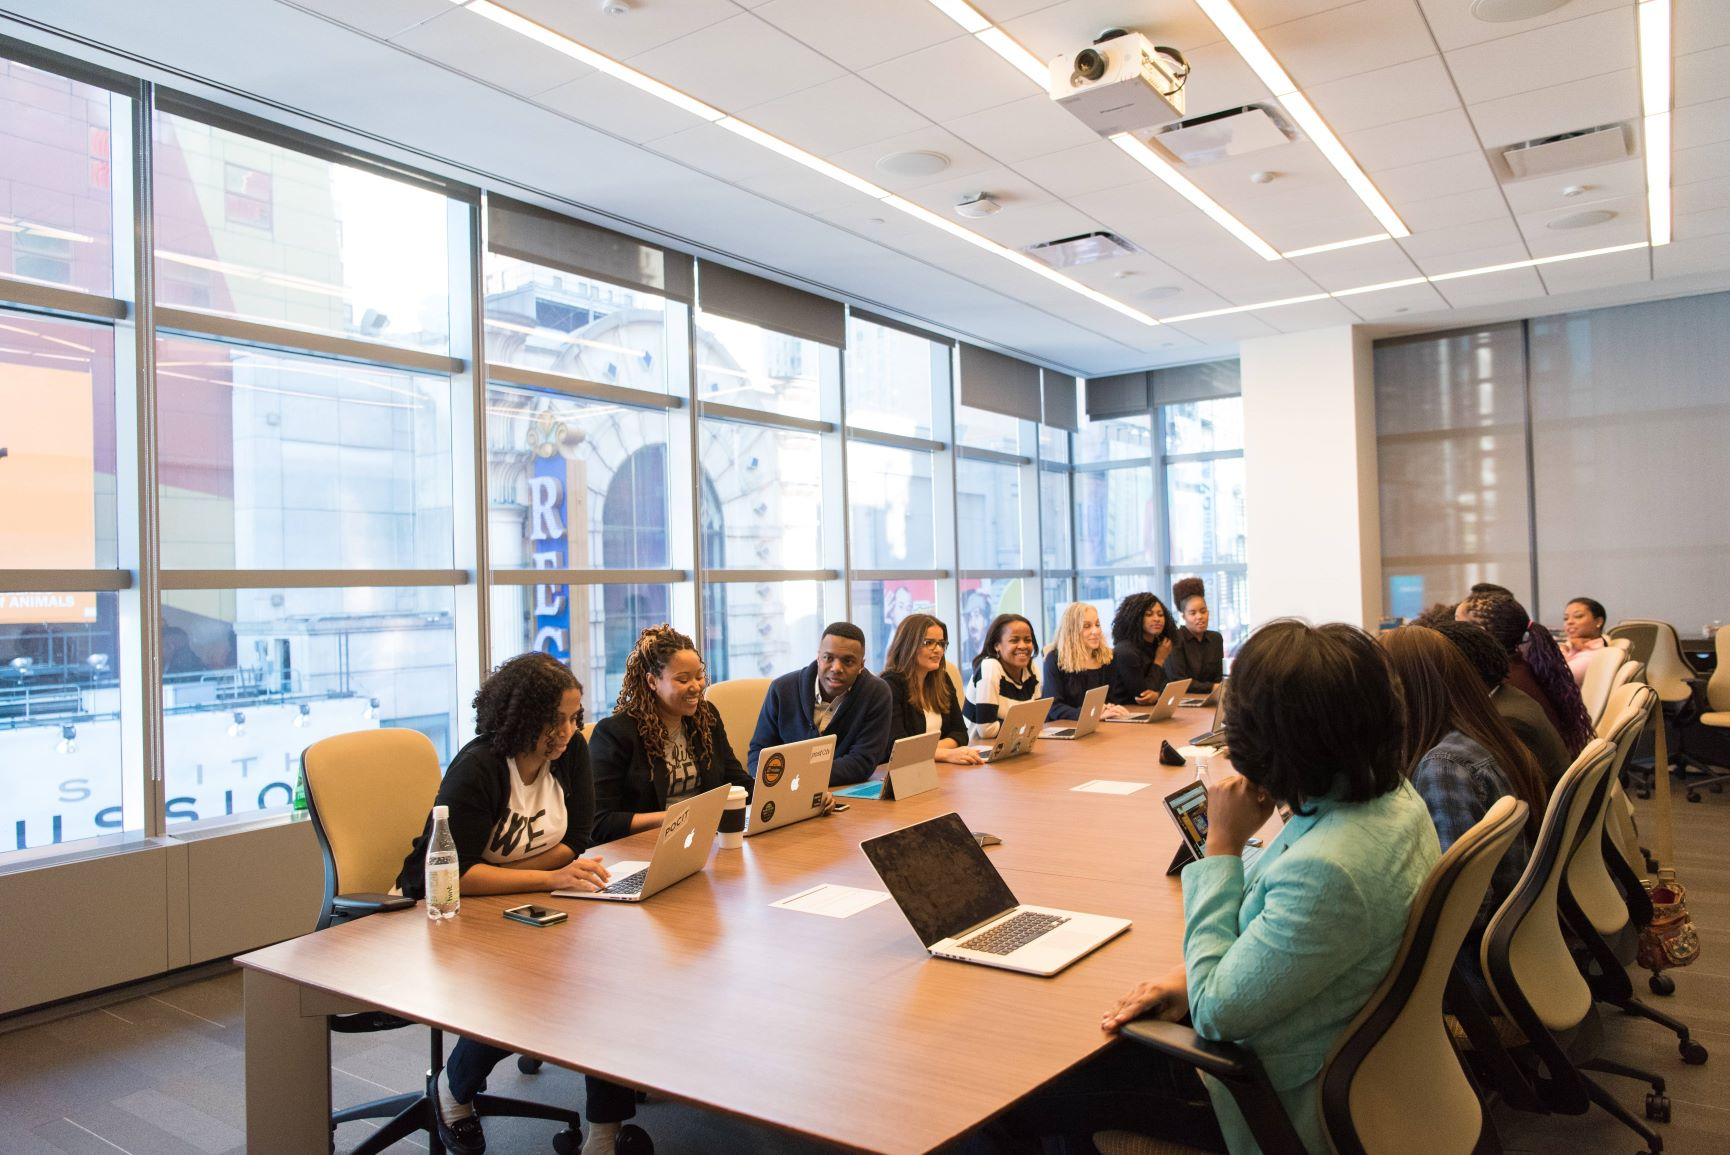 A large number of people sitting at a conference table in a meeting.